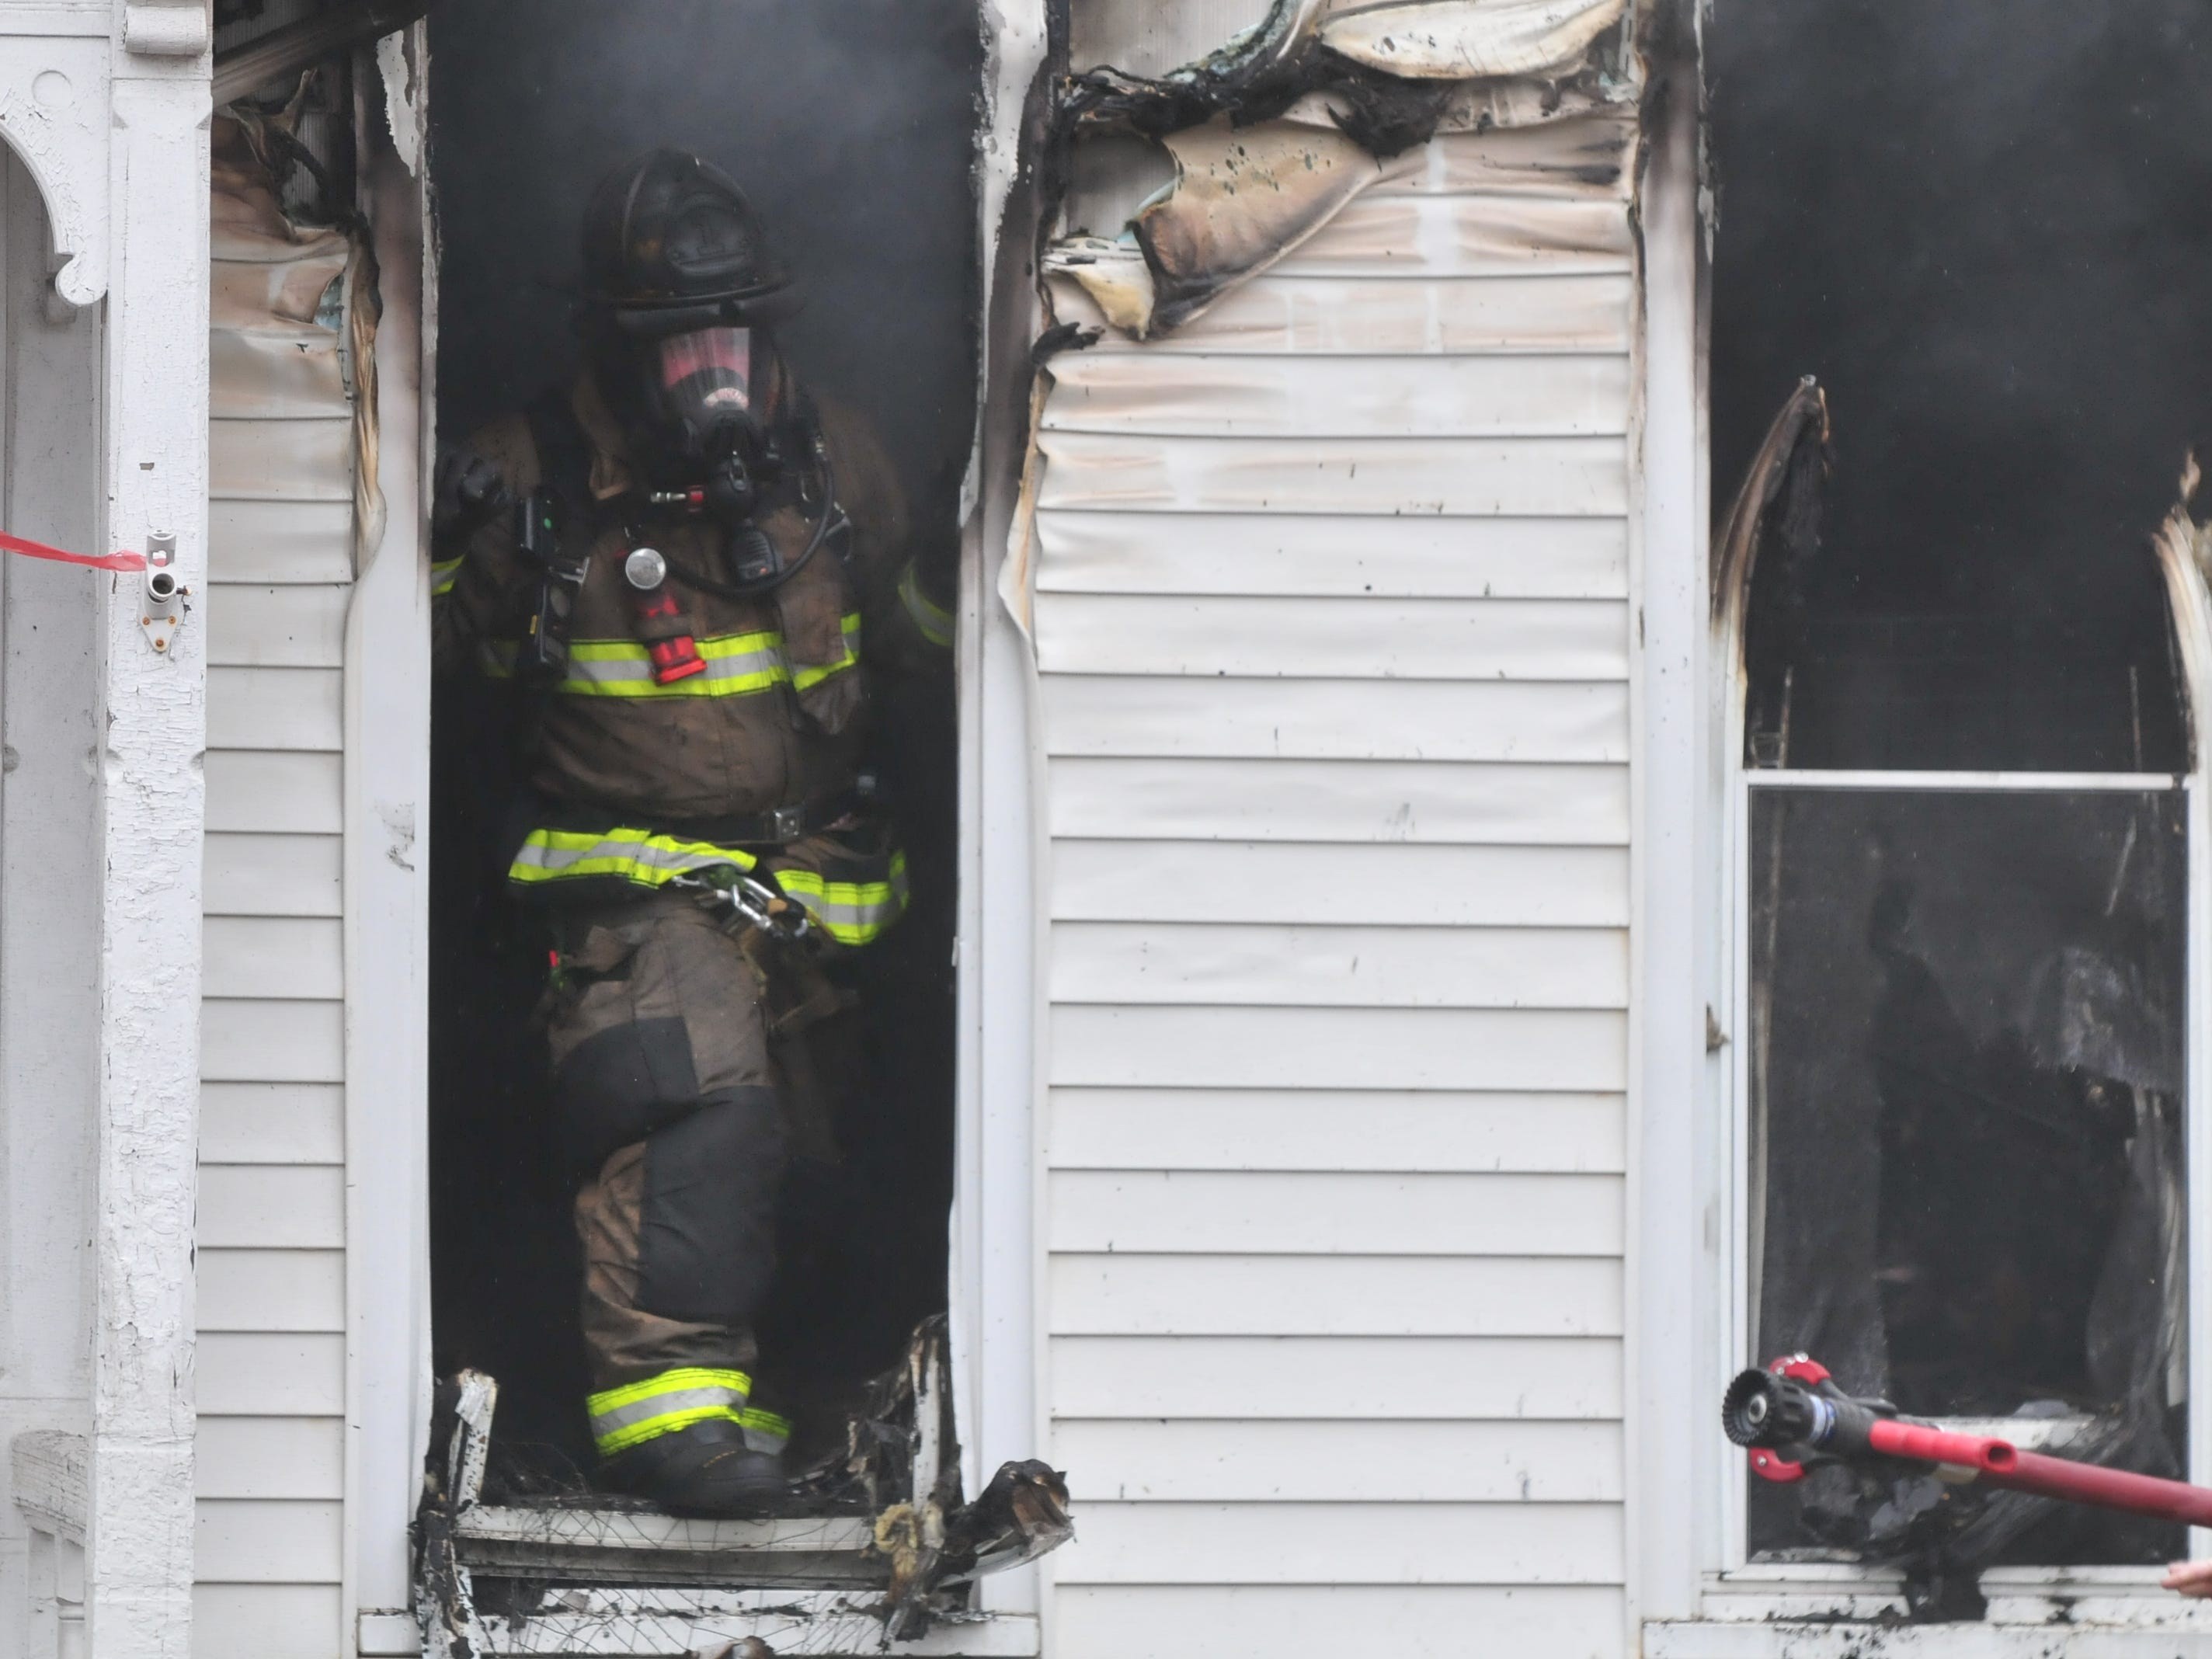 A firefighter waits for a hose line during a house fire Wednesday at 112 N. 18th St.